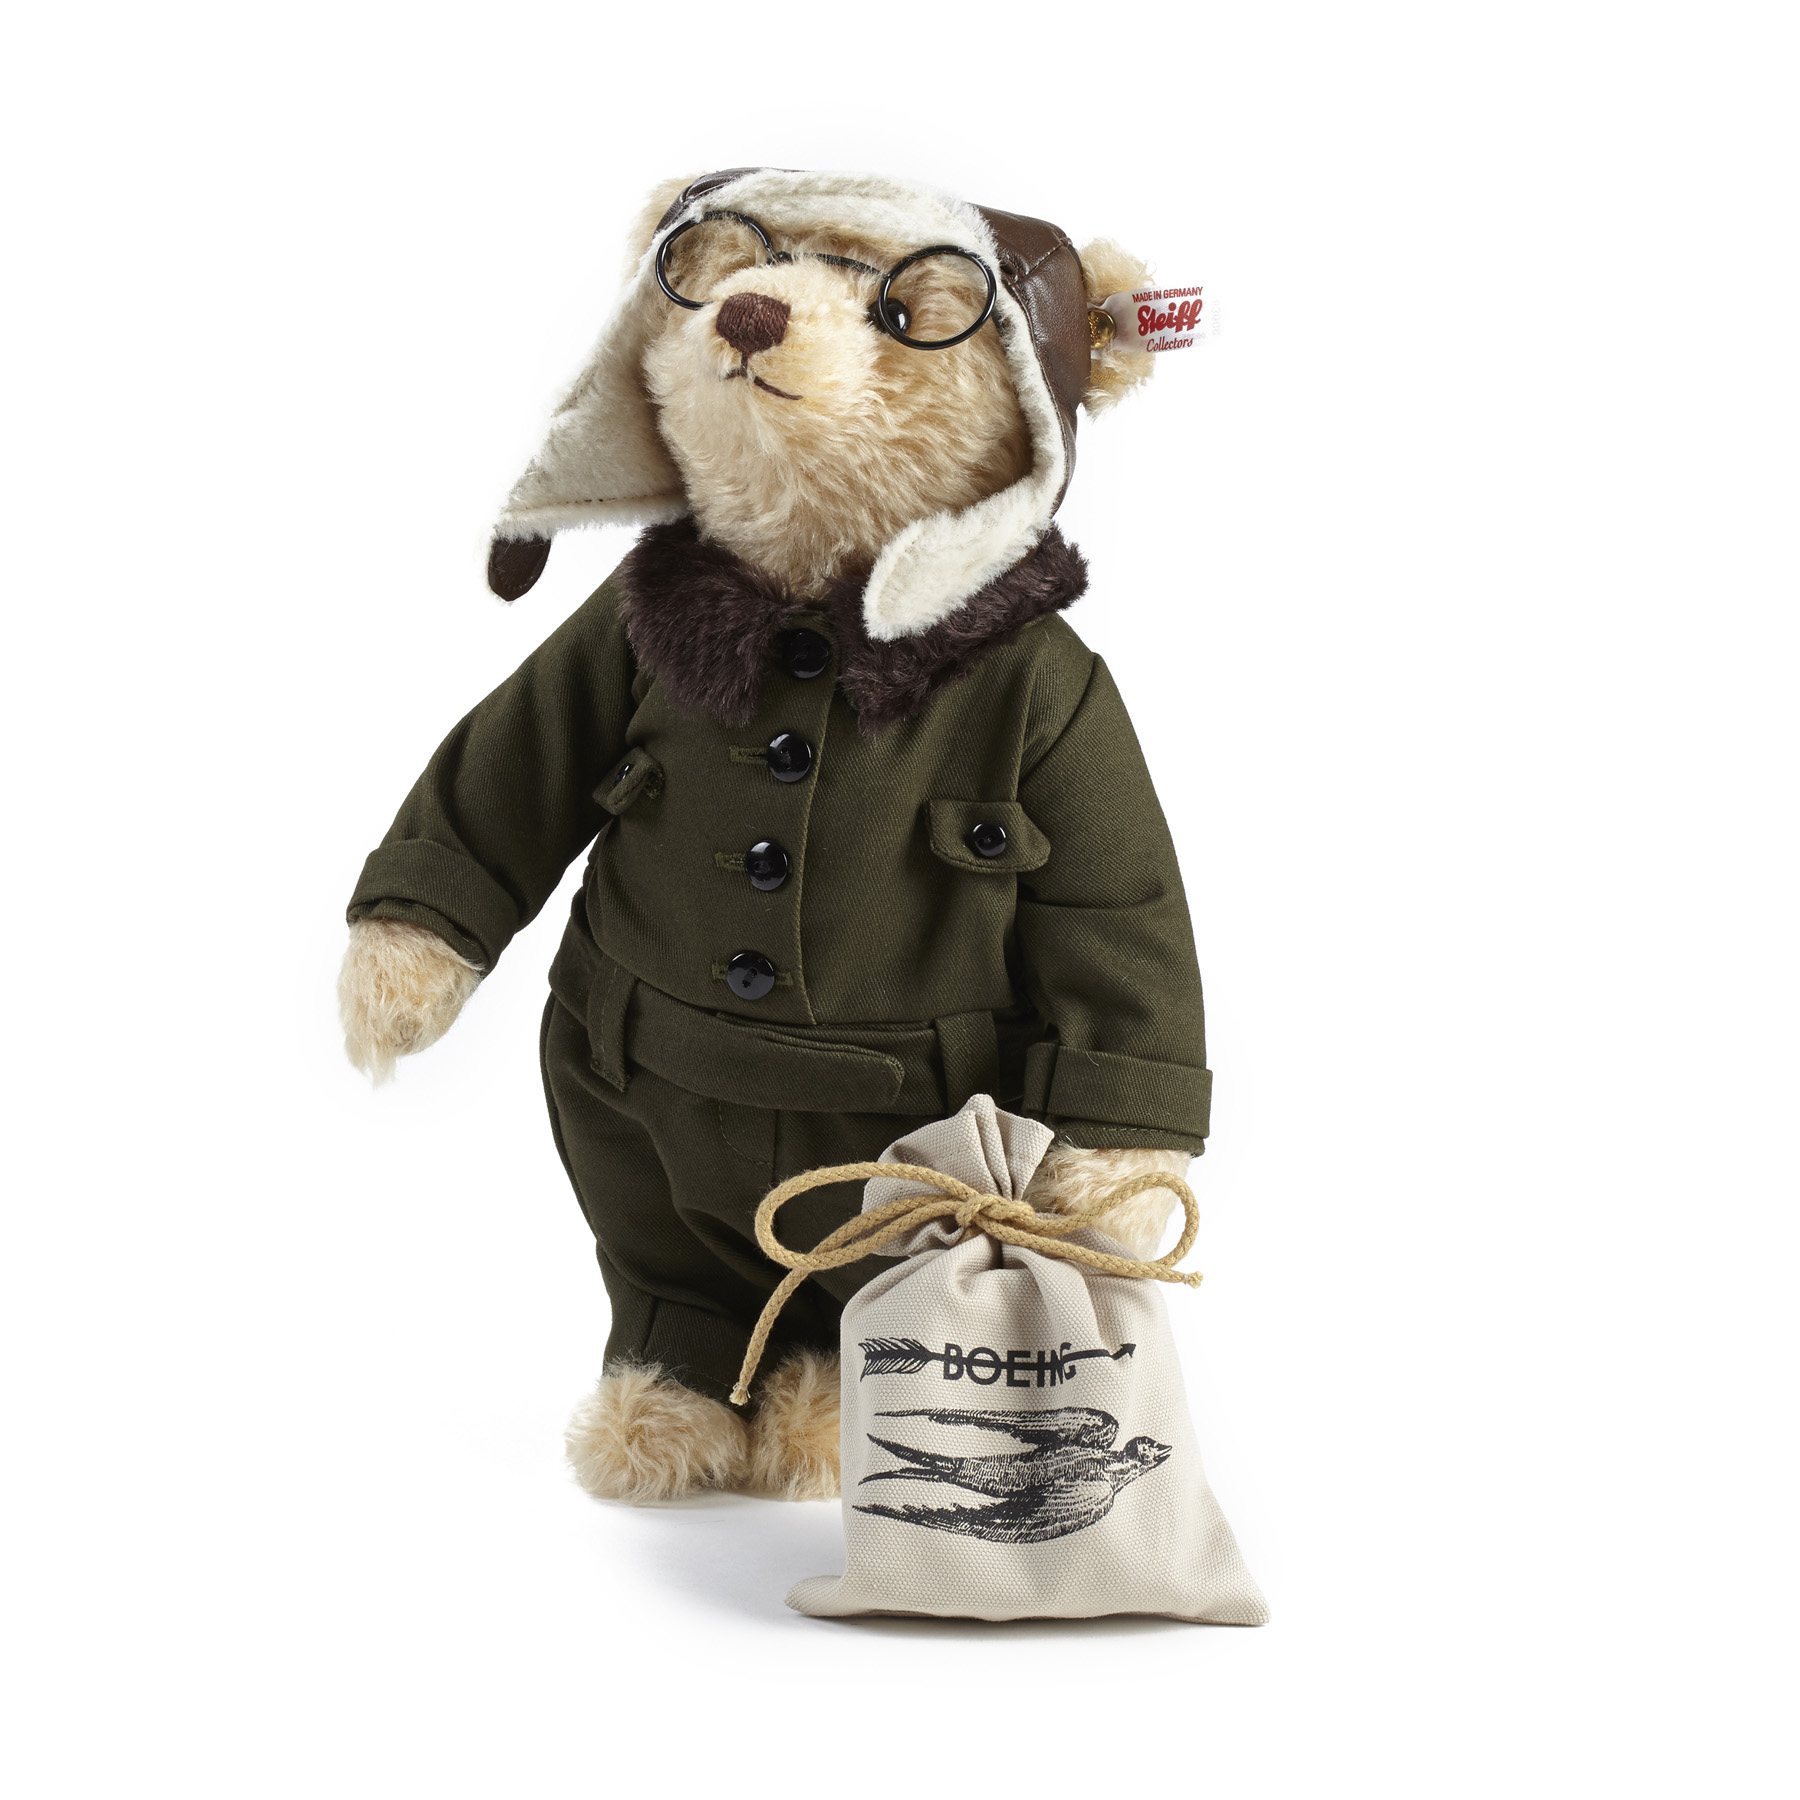 German toymaker Steiff, inventors of the teddy bear, worked with Boeing Archives to create William E. Bear, a stuffed bear designed to honor company founder William E. Boeing, who donned aviator gear to make the first international air mail flight.